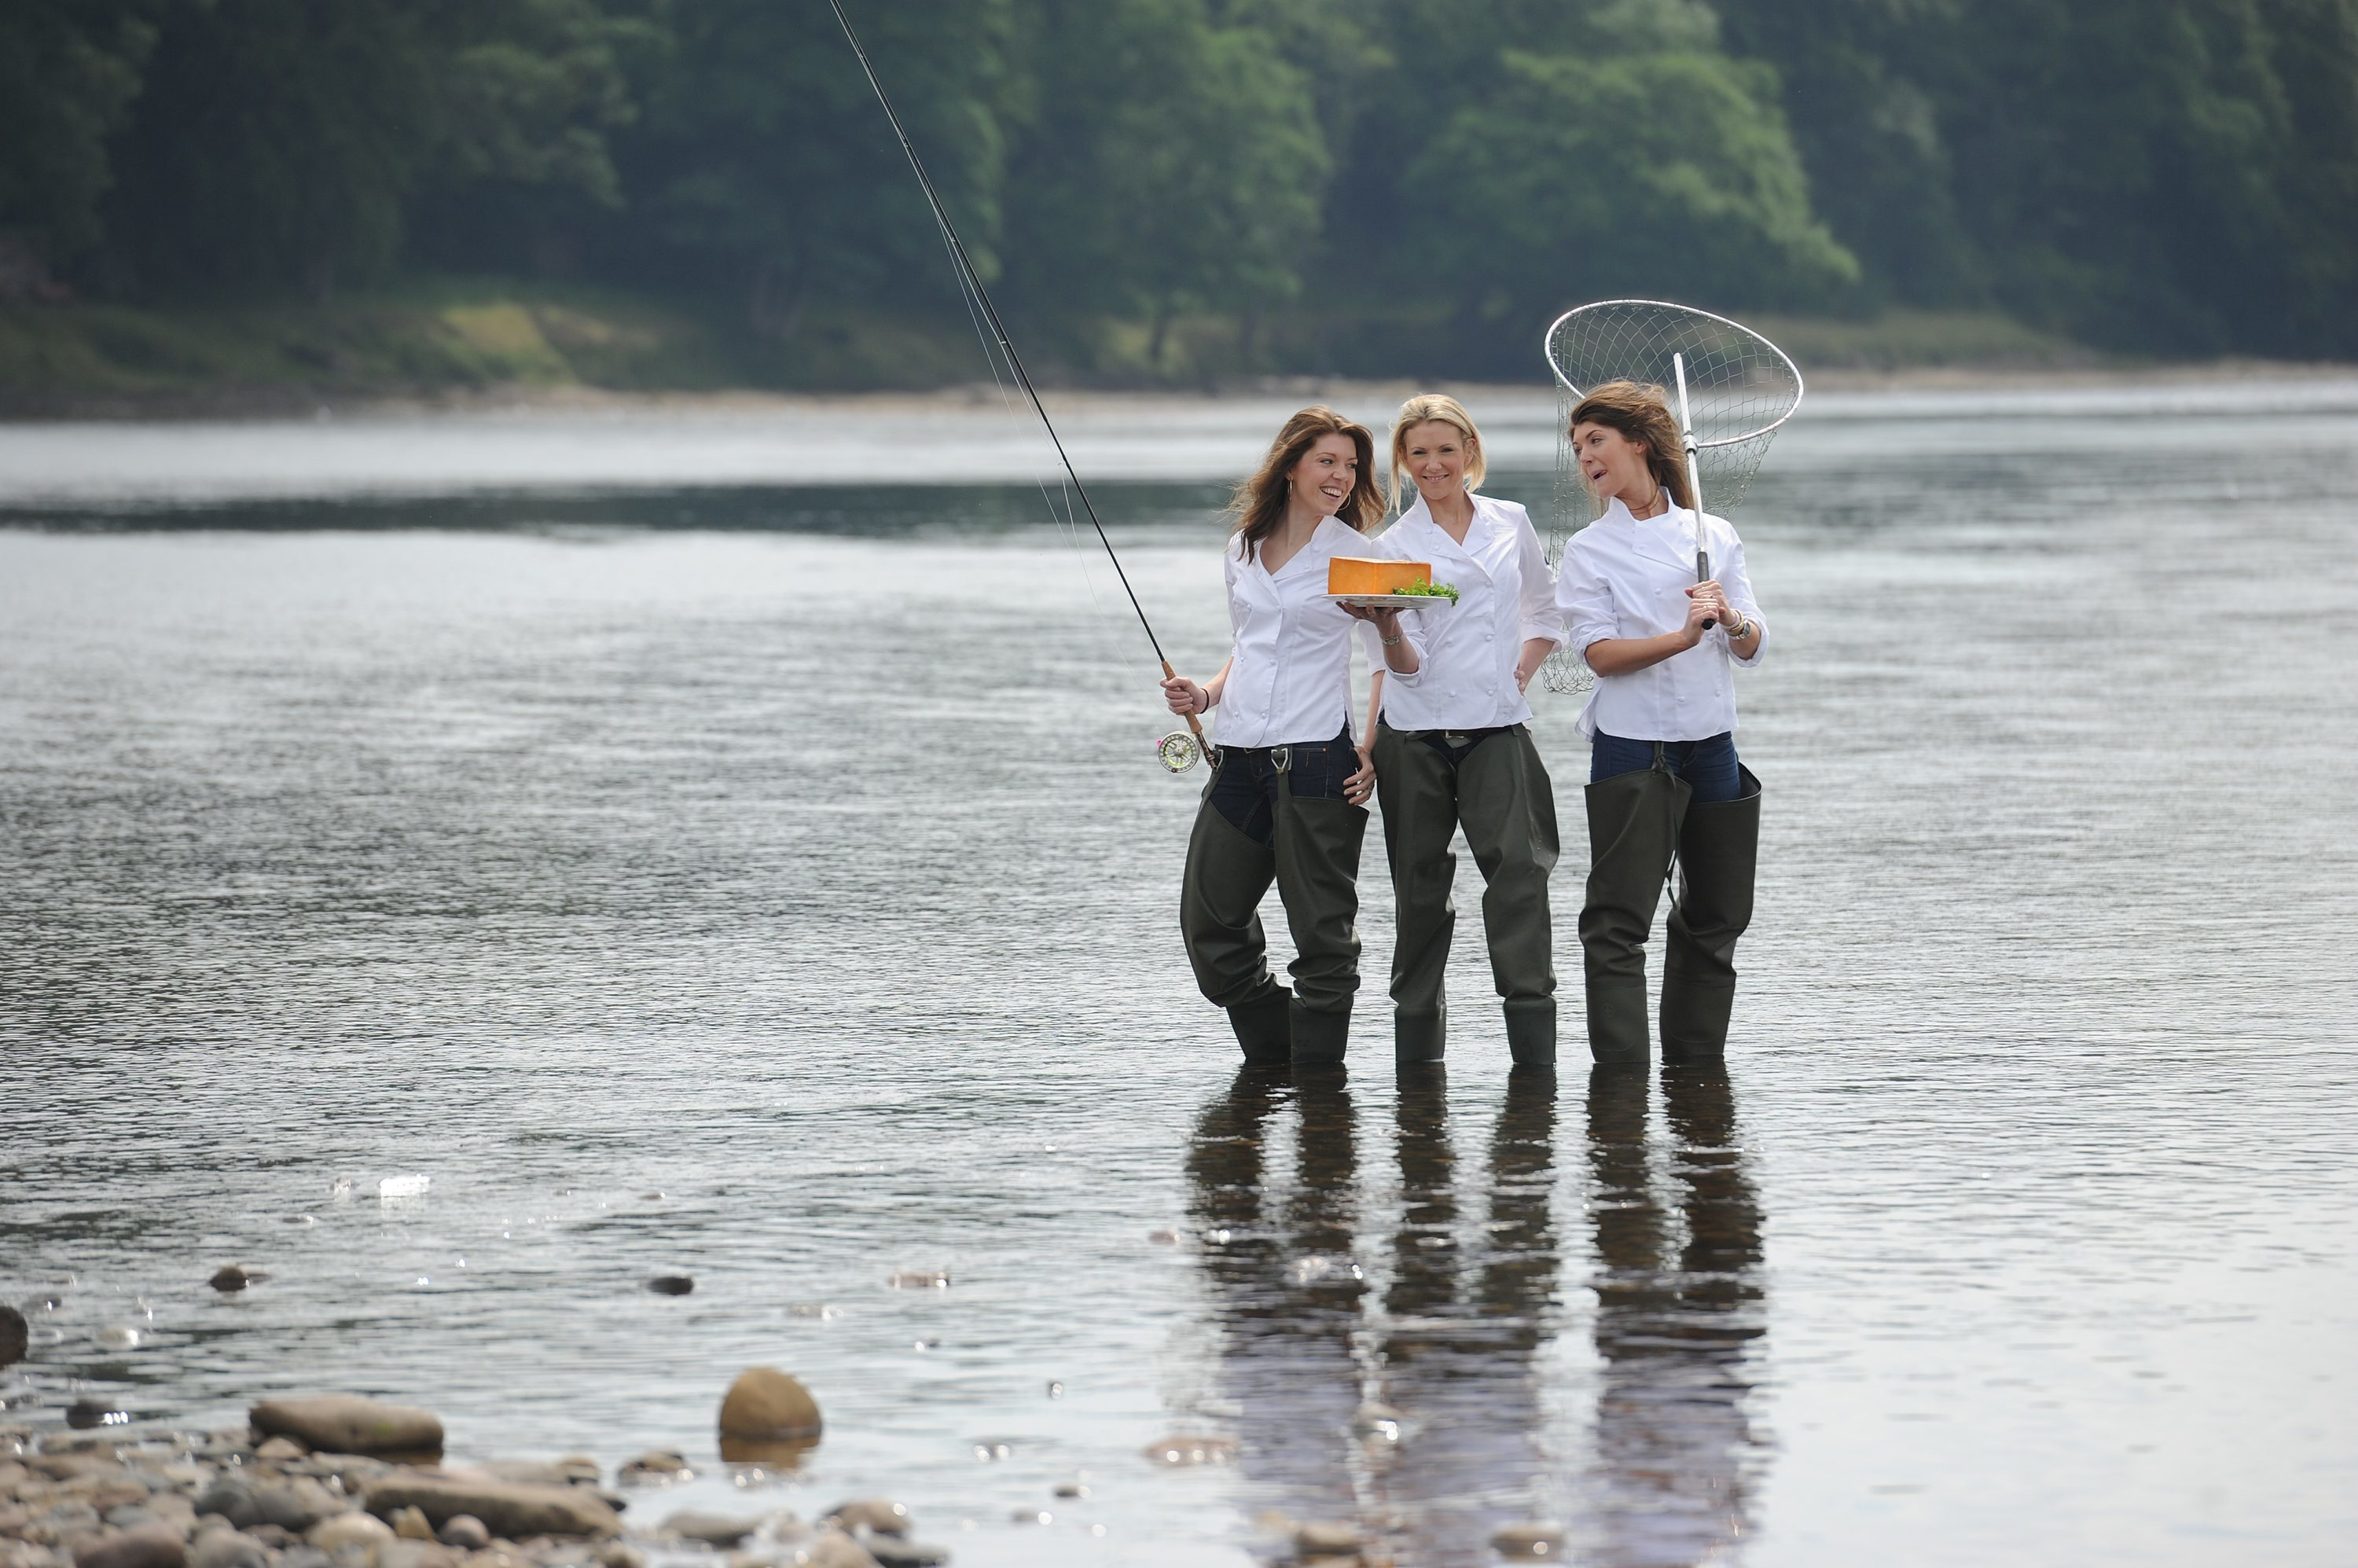 3 Sisters Bake will appear at the Scottish Game Fair this weekend.